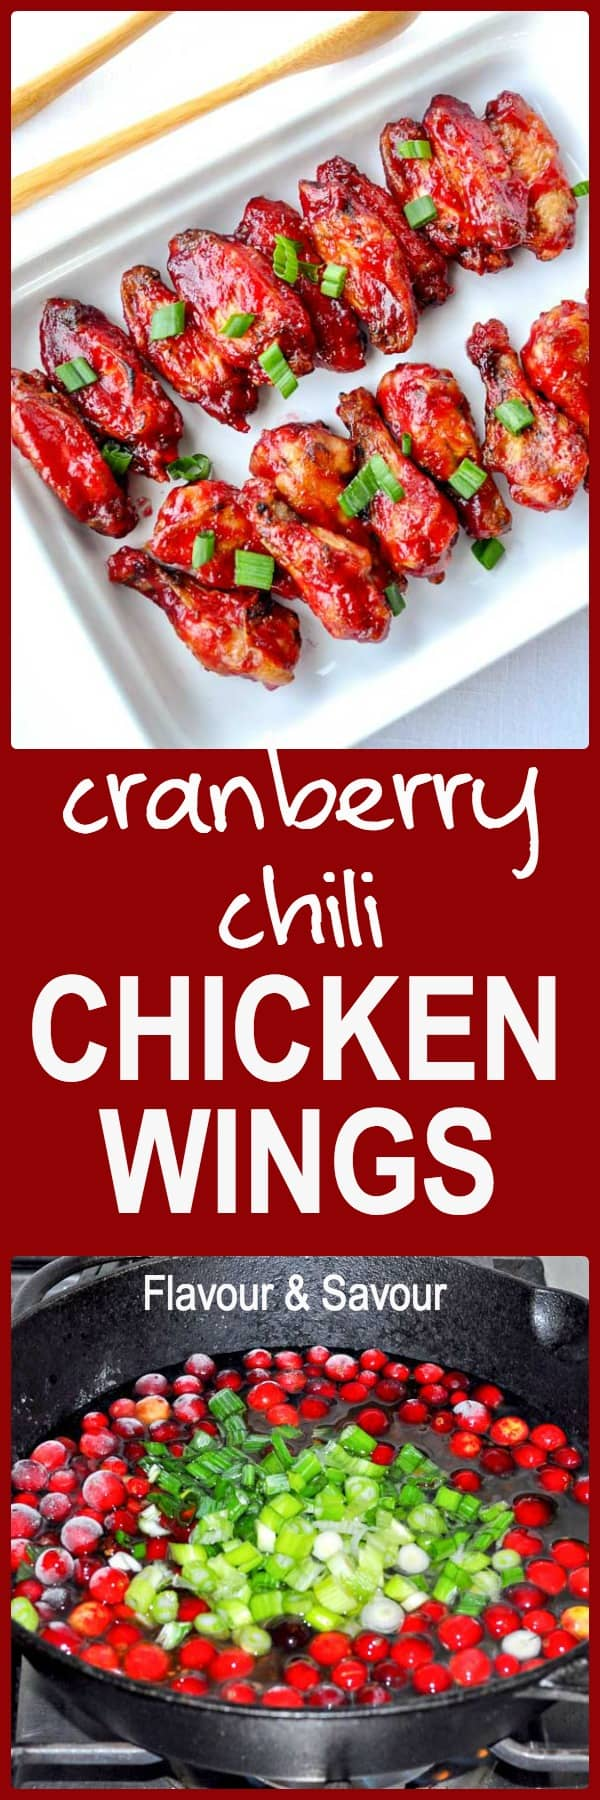 Cranberry Glazed Chili Chicken Wings. Sweet with a bit of a kick! Only 3 ingredients. Perfect for holiday parties.